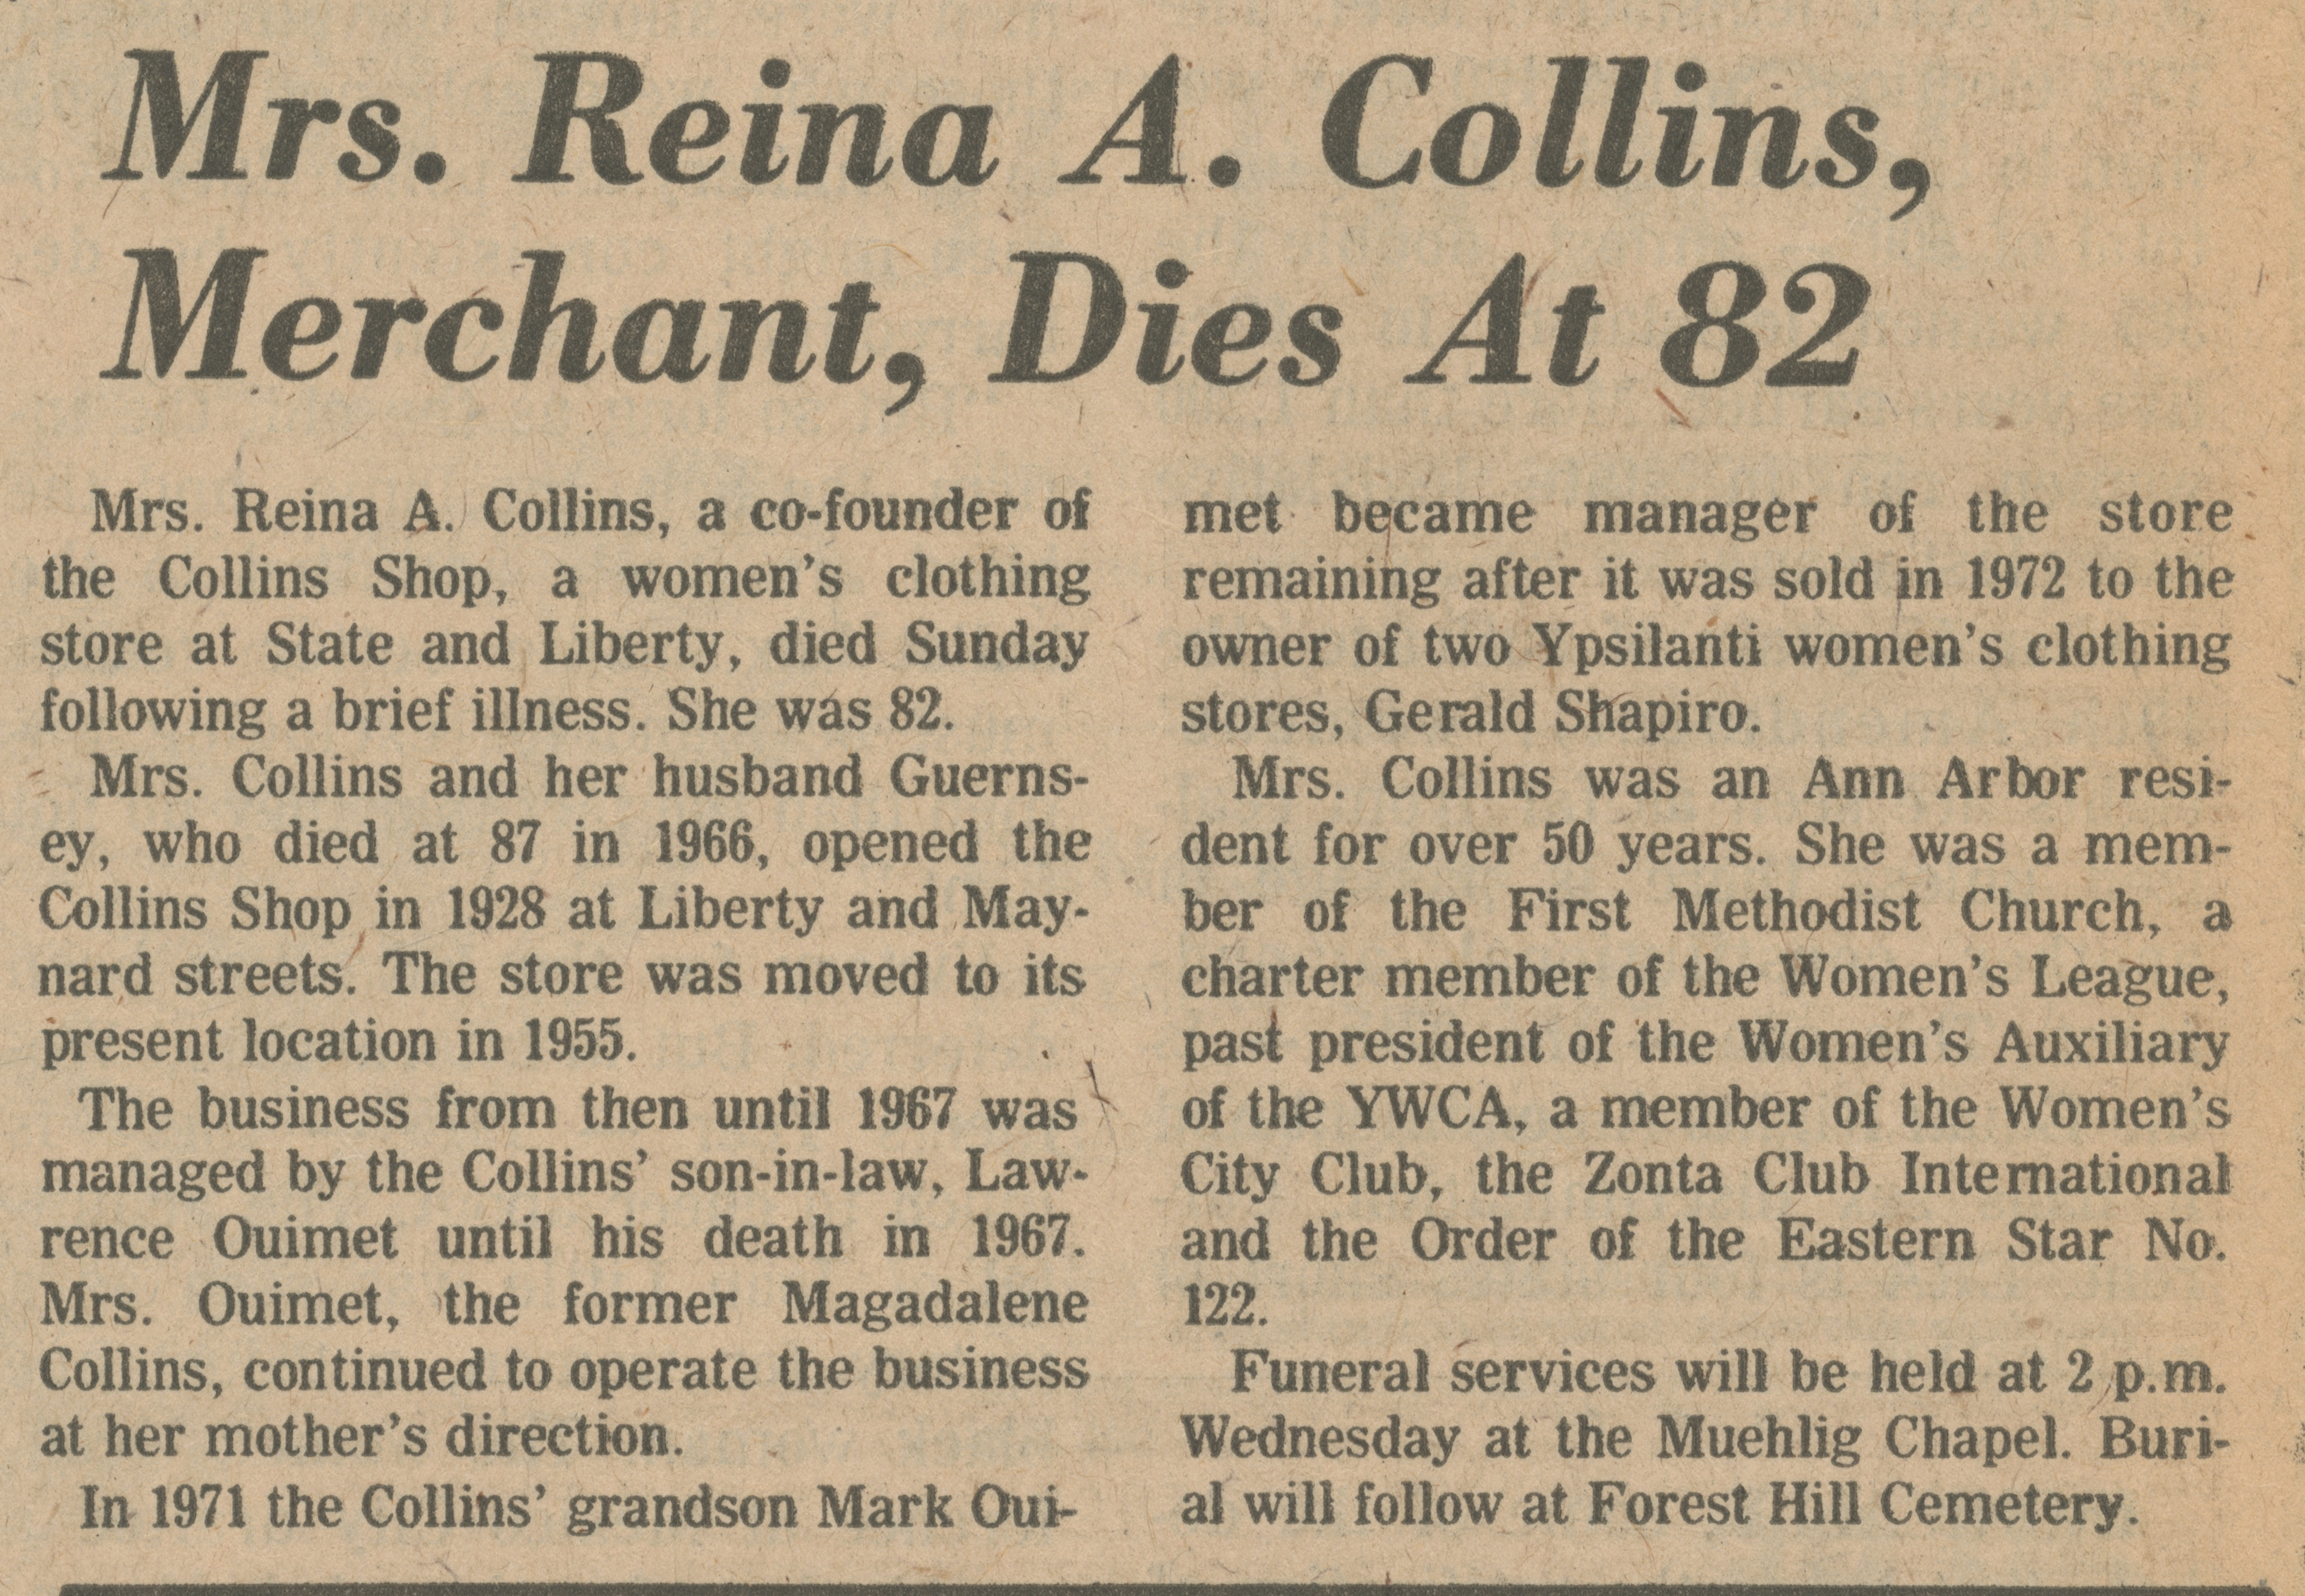 Mrs. Reina A. Collins, Merchant, Dies At 82 image